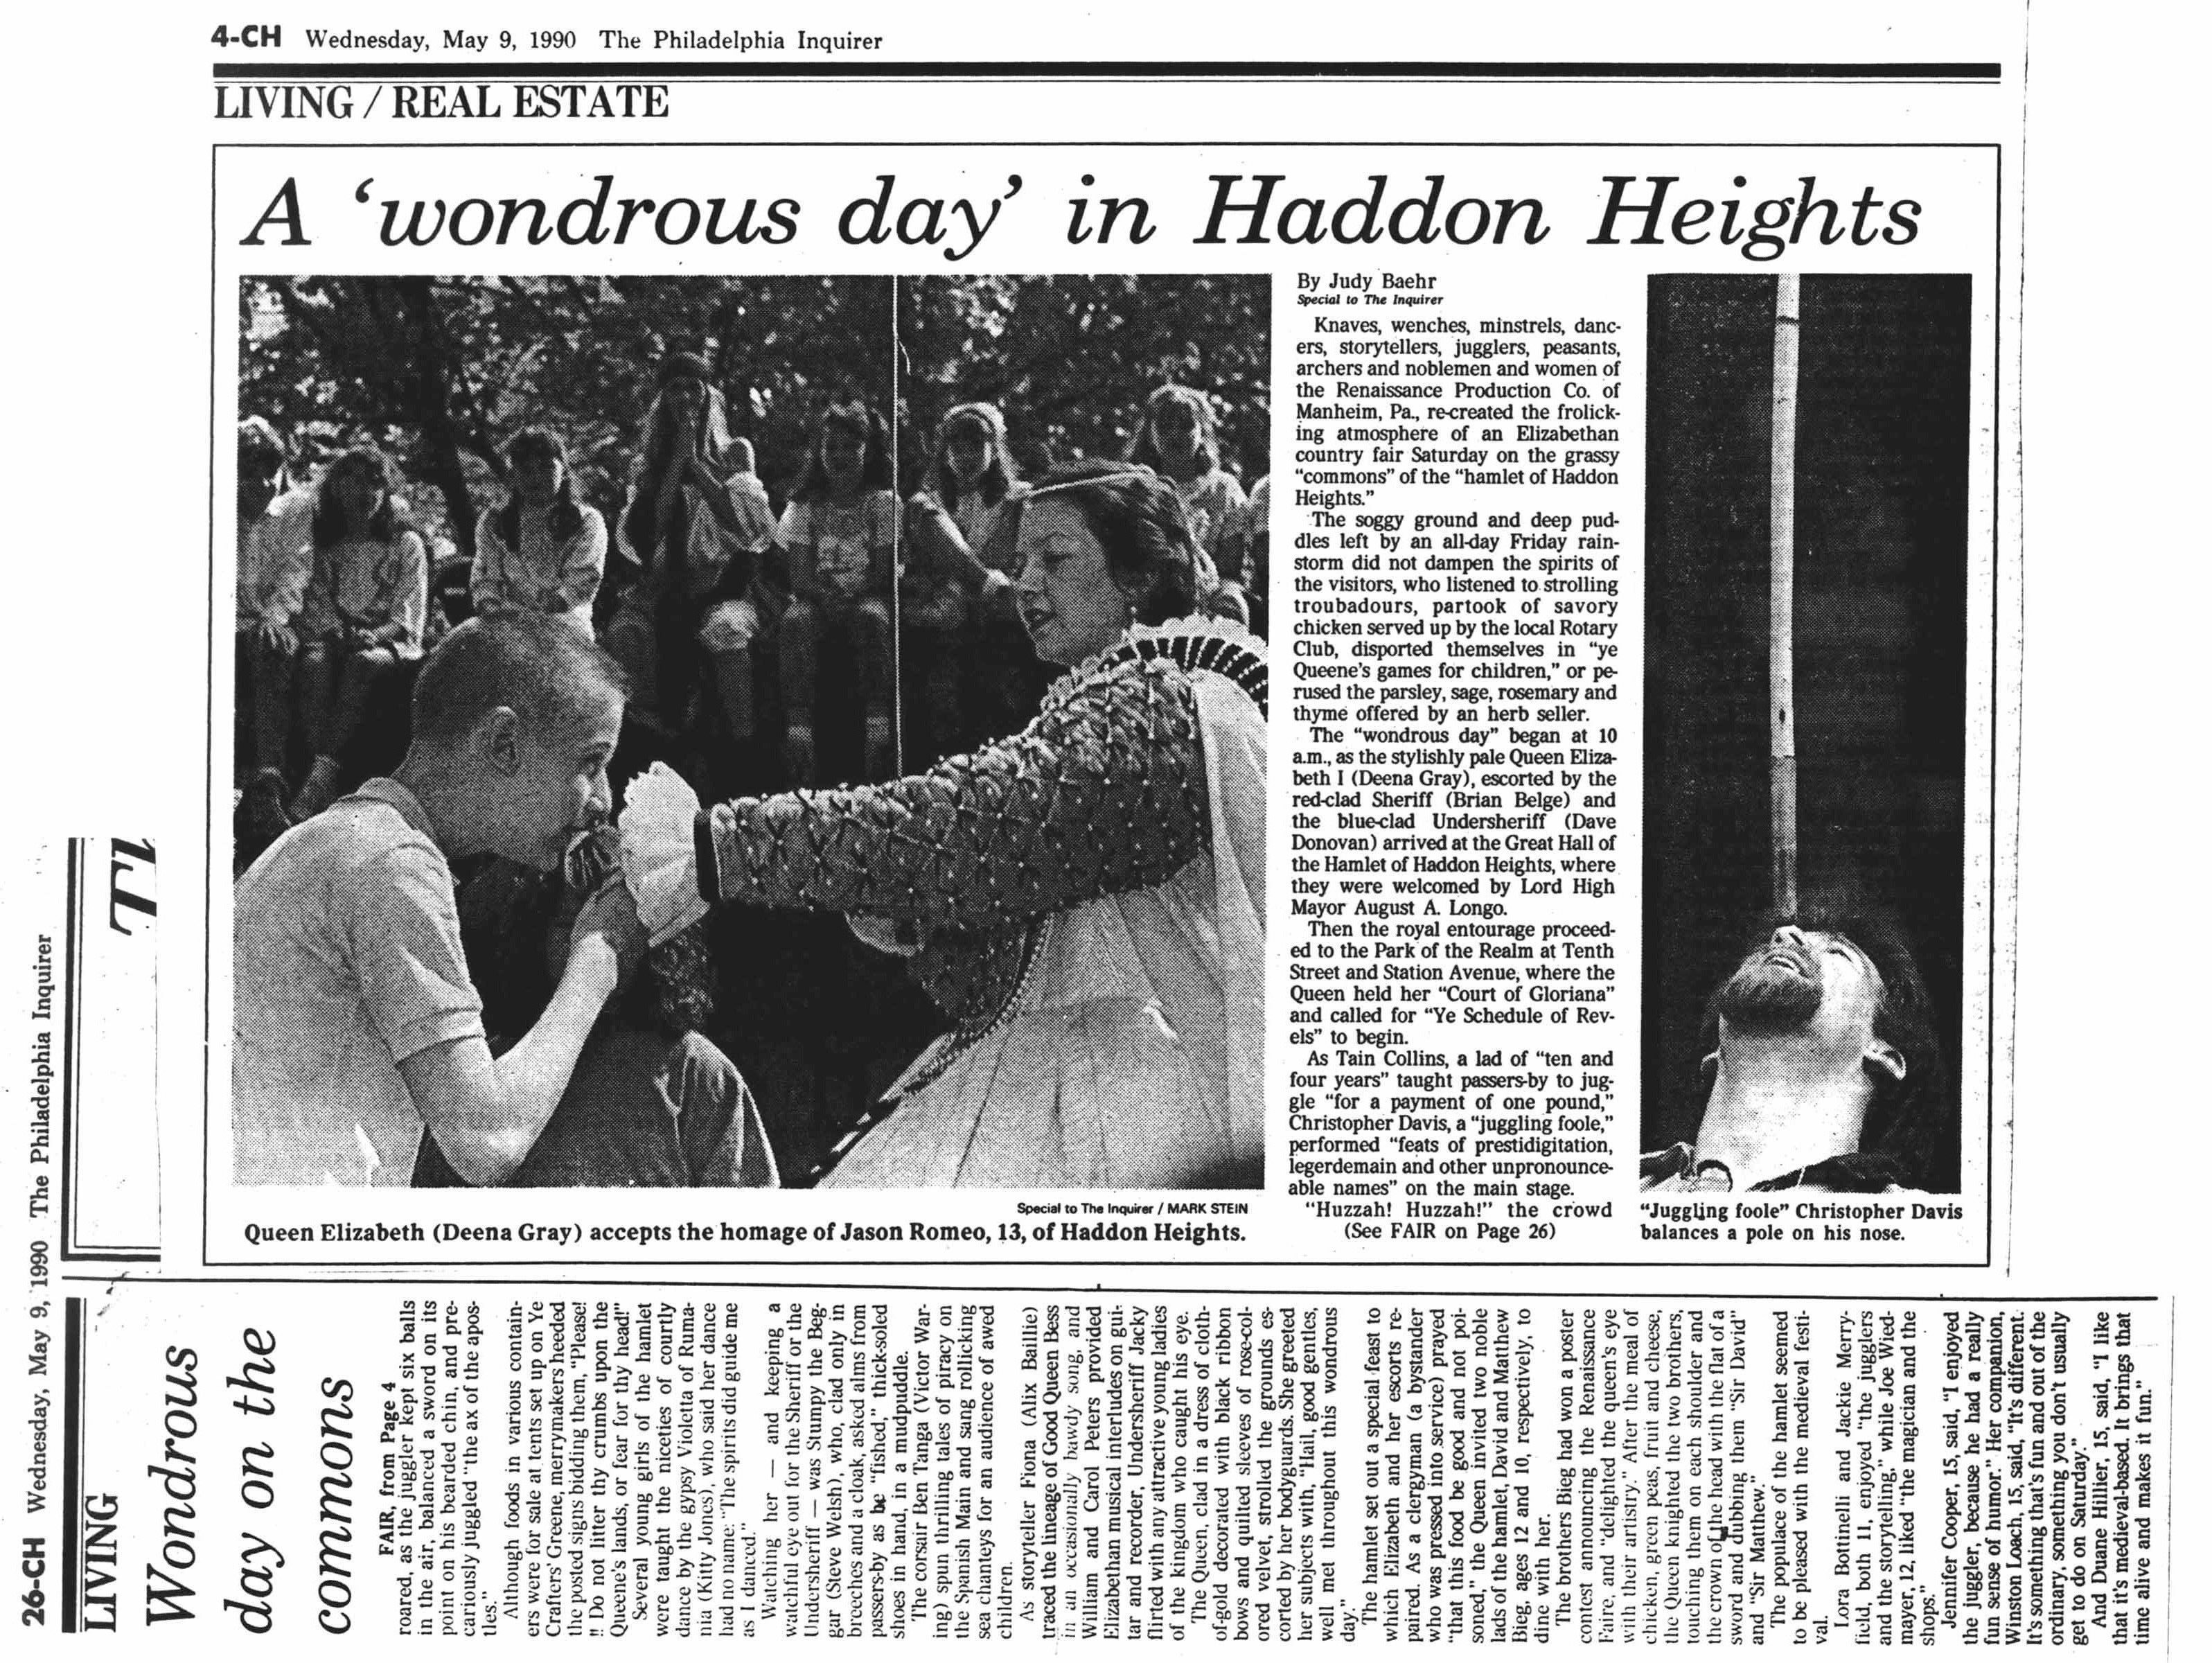 Wondrous-Day-Haddon-Heights-article